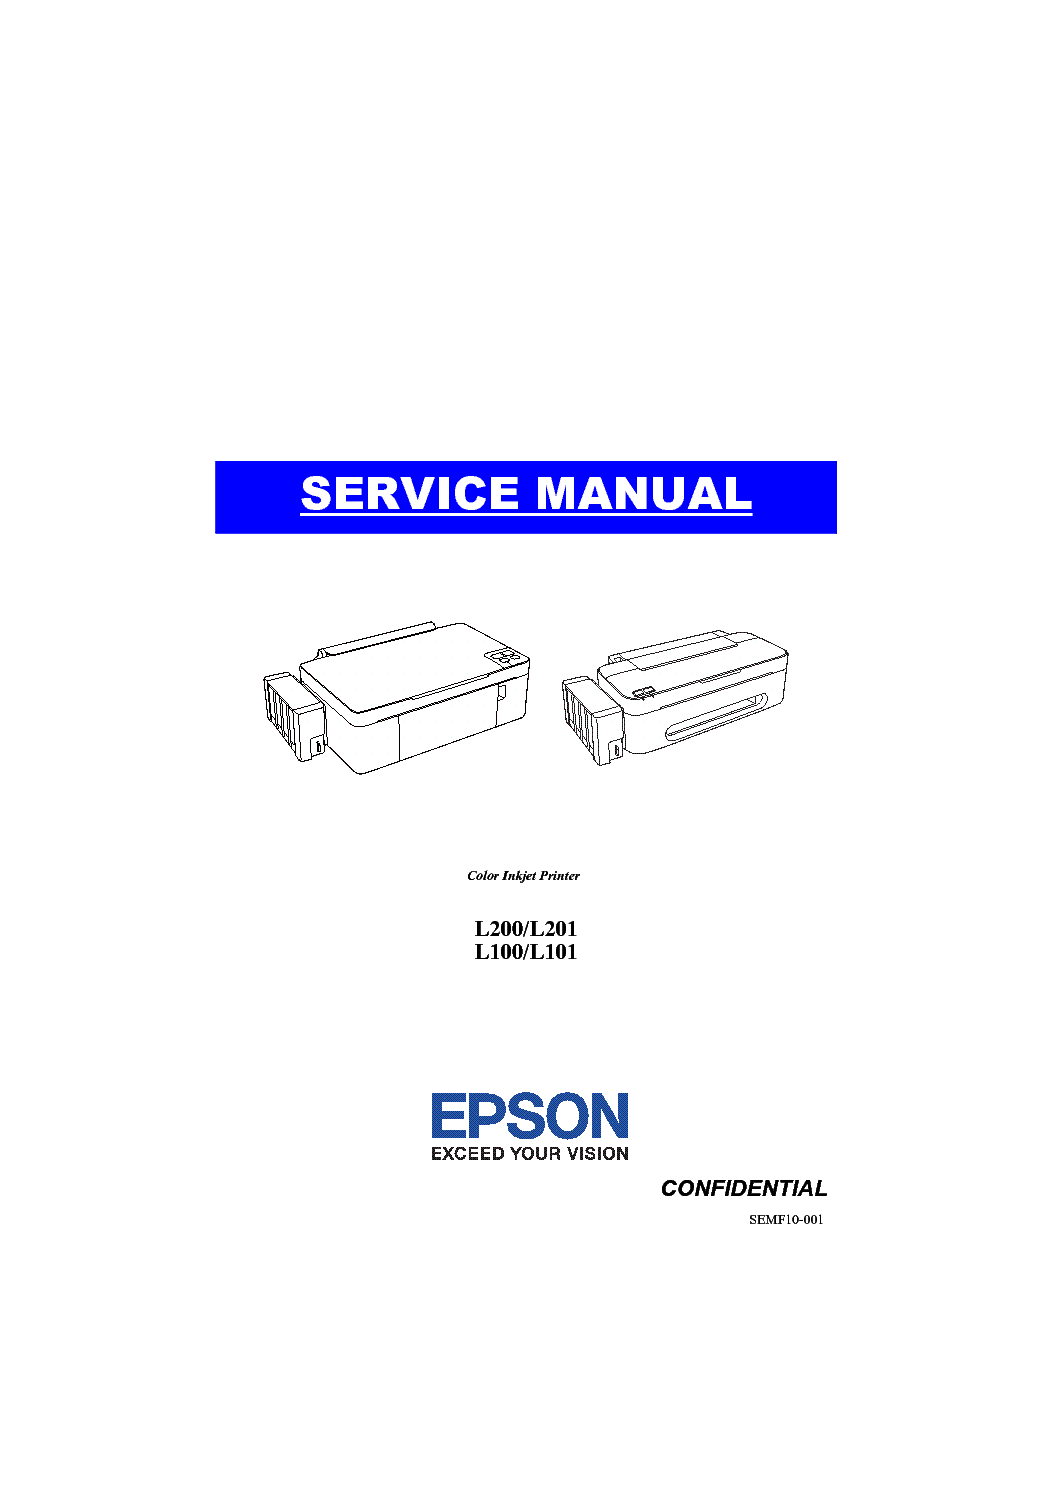 EPSON L200 L100 SERIES SM Service Manual download